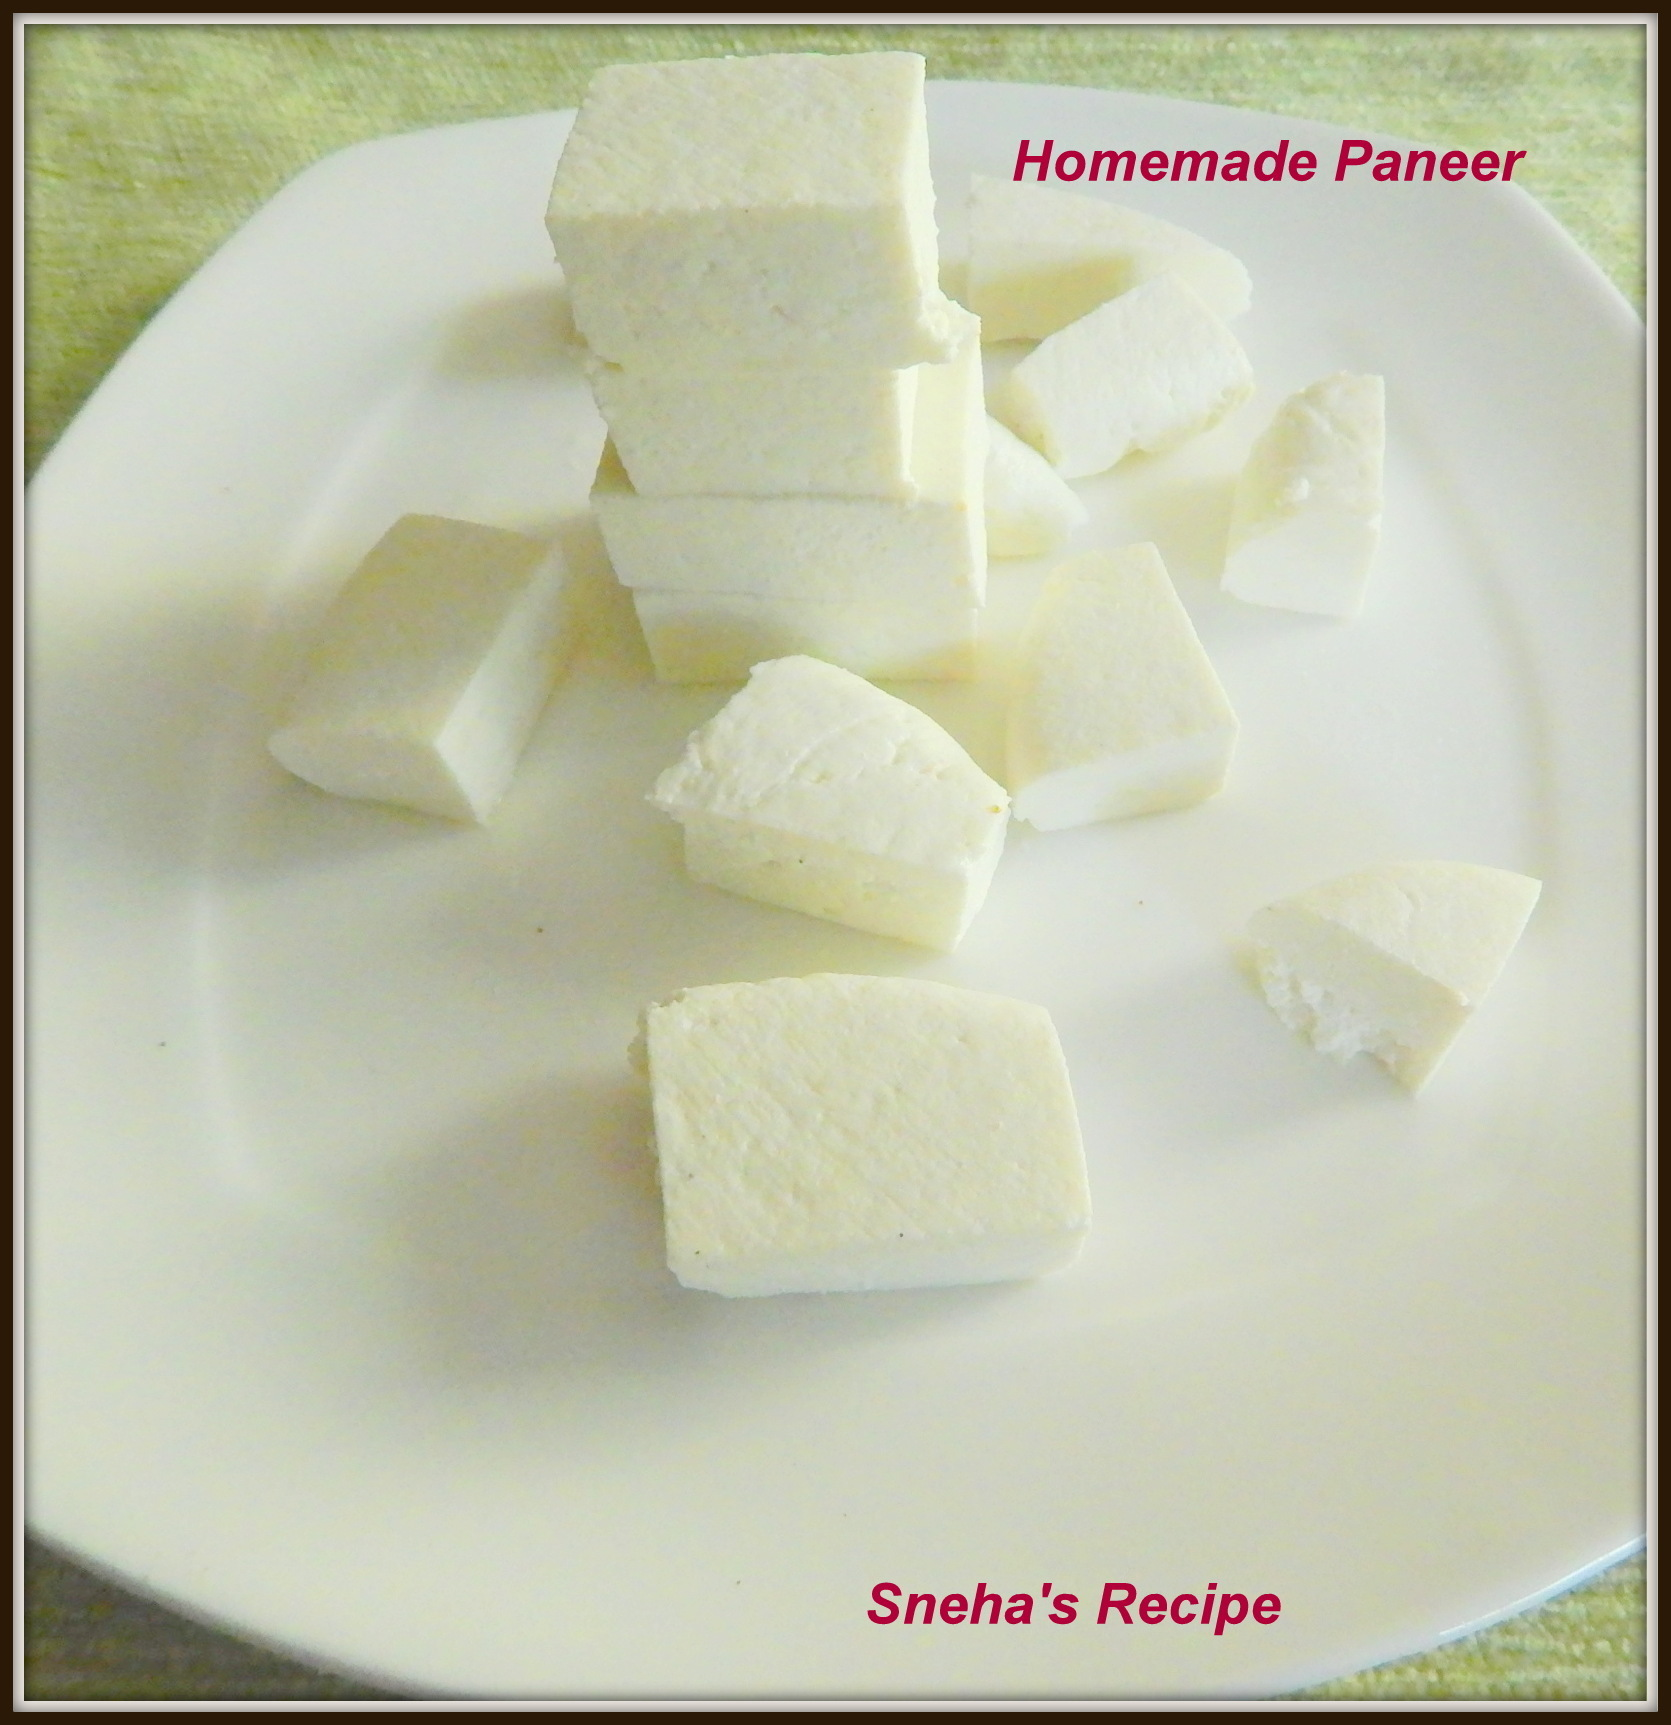 Homemade Paneer - How to Make Paneer ( Cottage Cheese) at Home